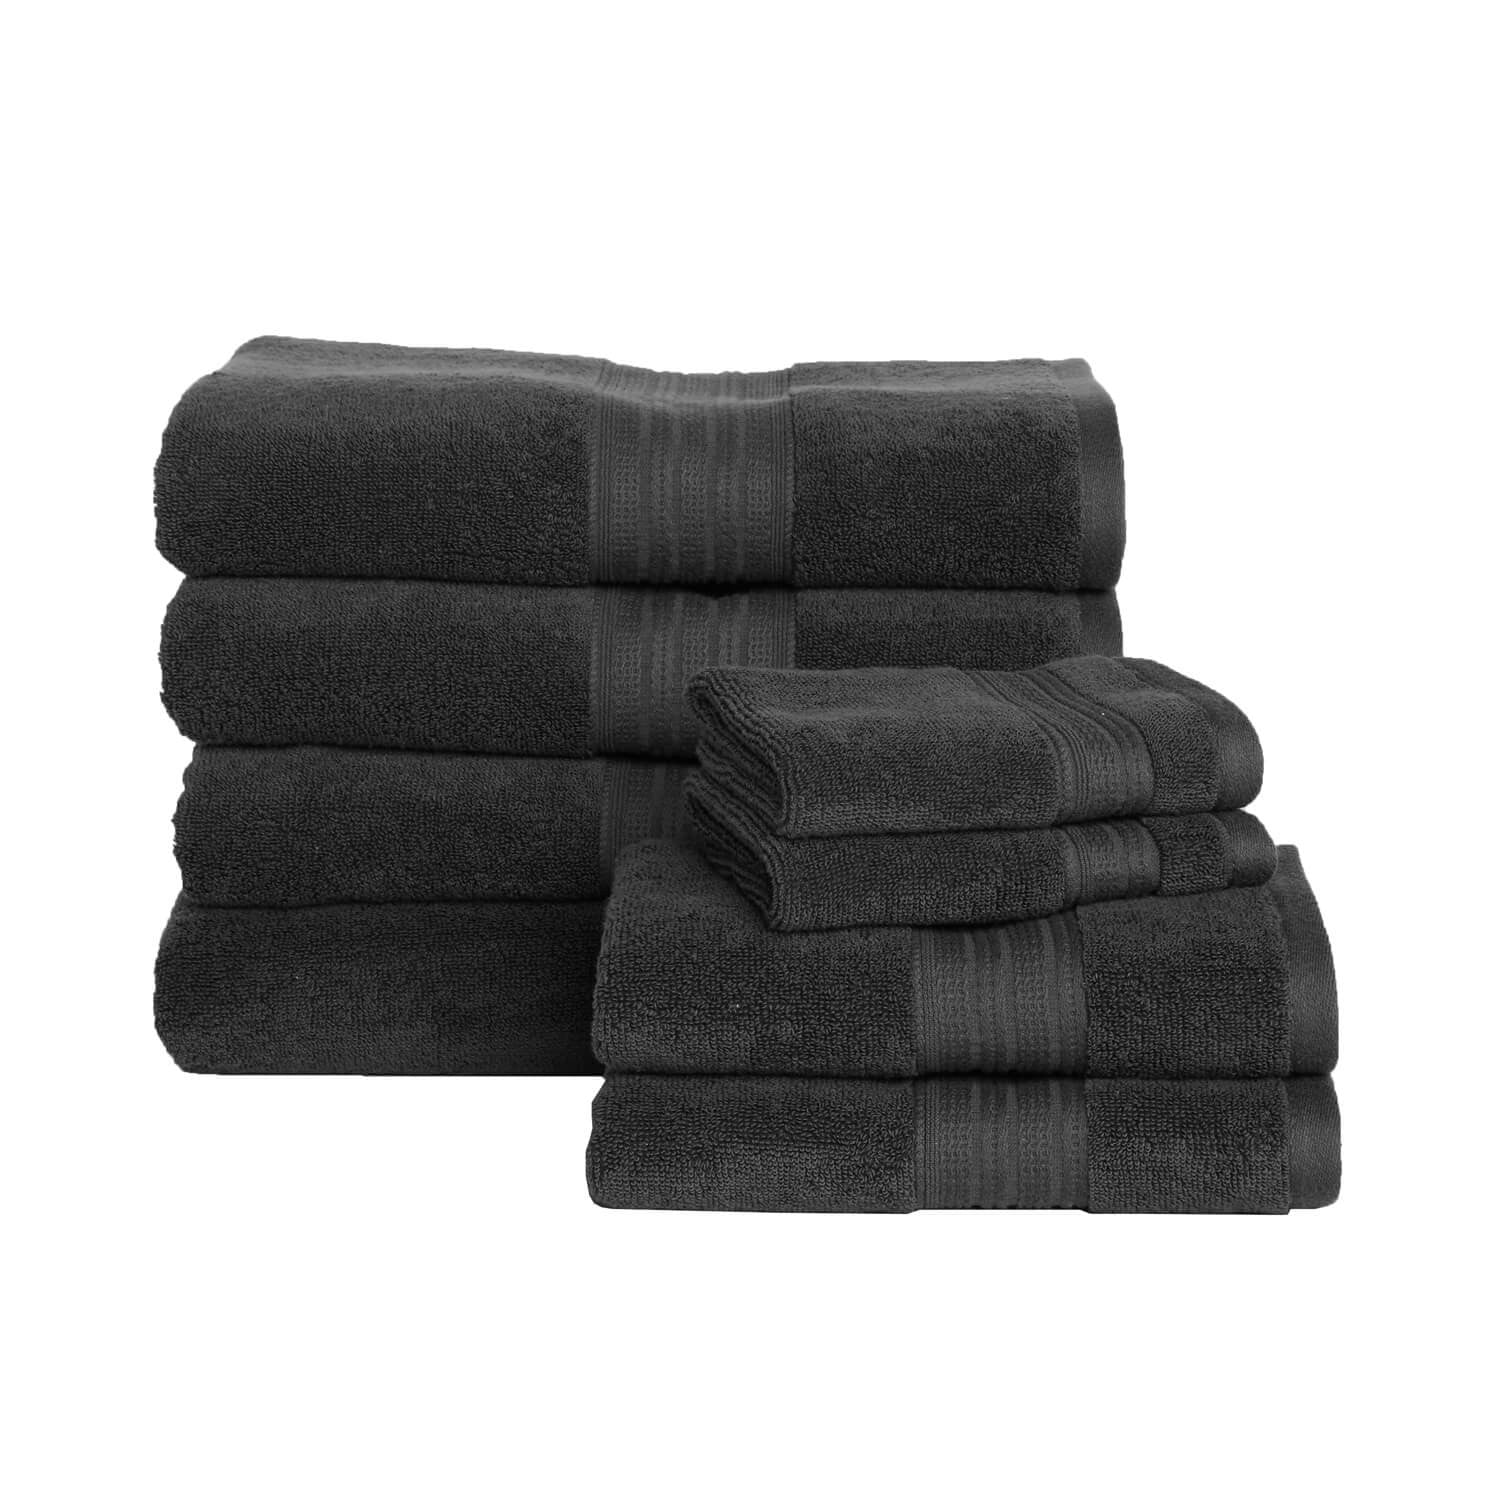 Luxe Towel Bundle - 15% SAVINGS - Charcoal